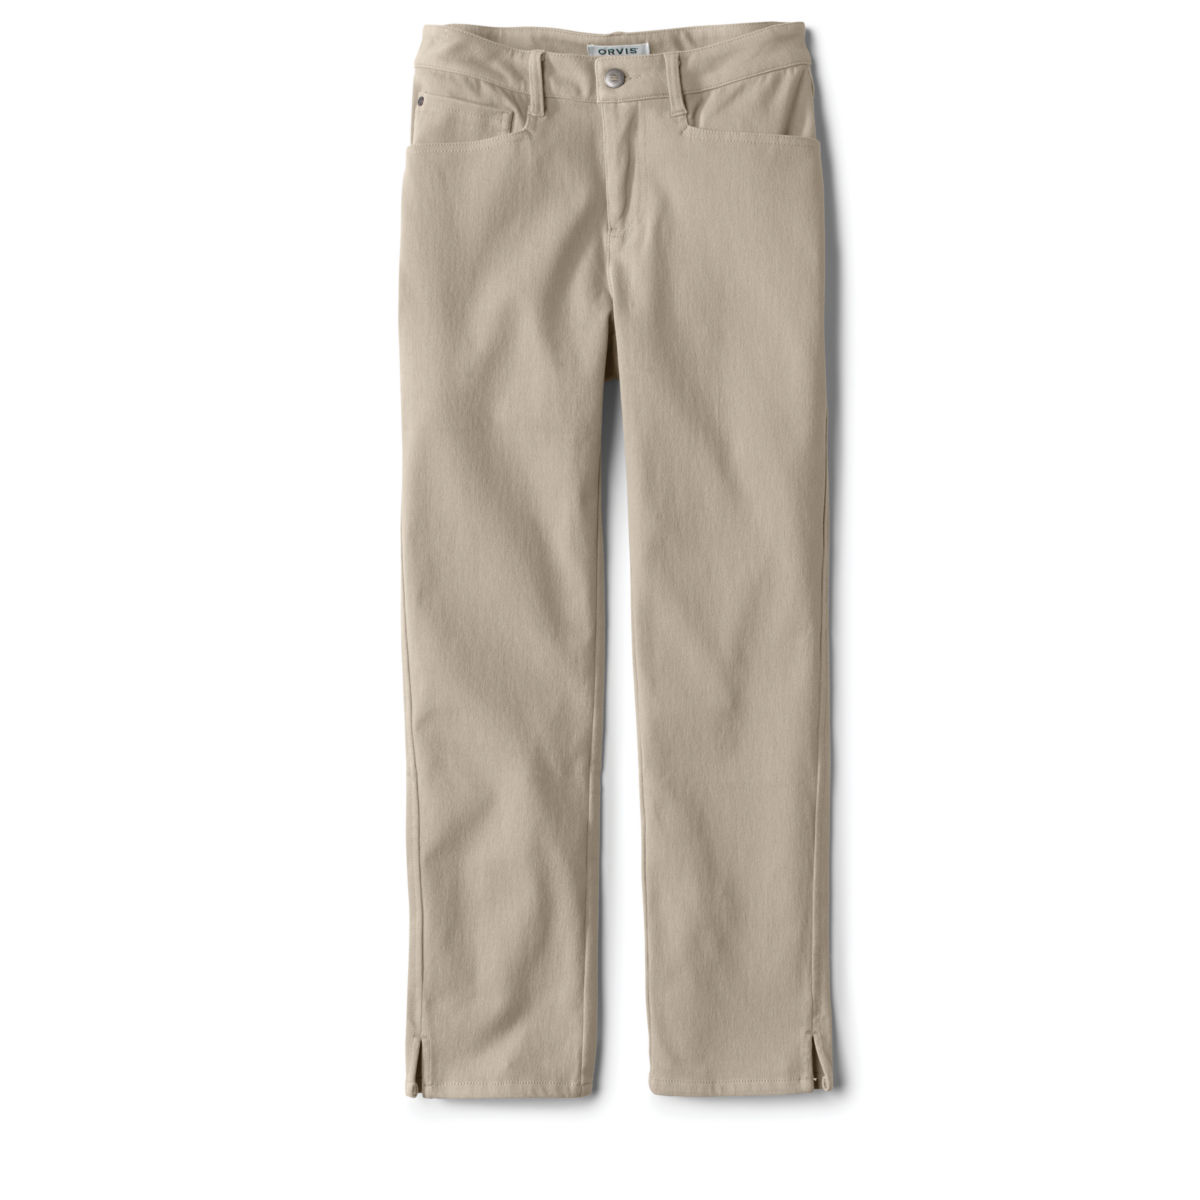 Concord Cropped Jeans - KHAKIimage number 0